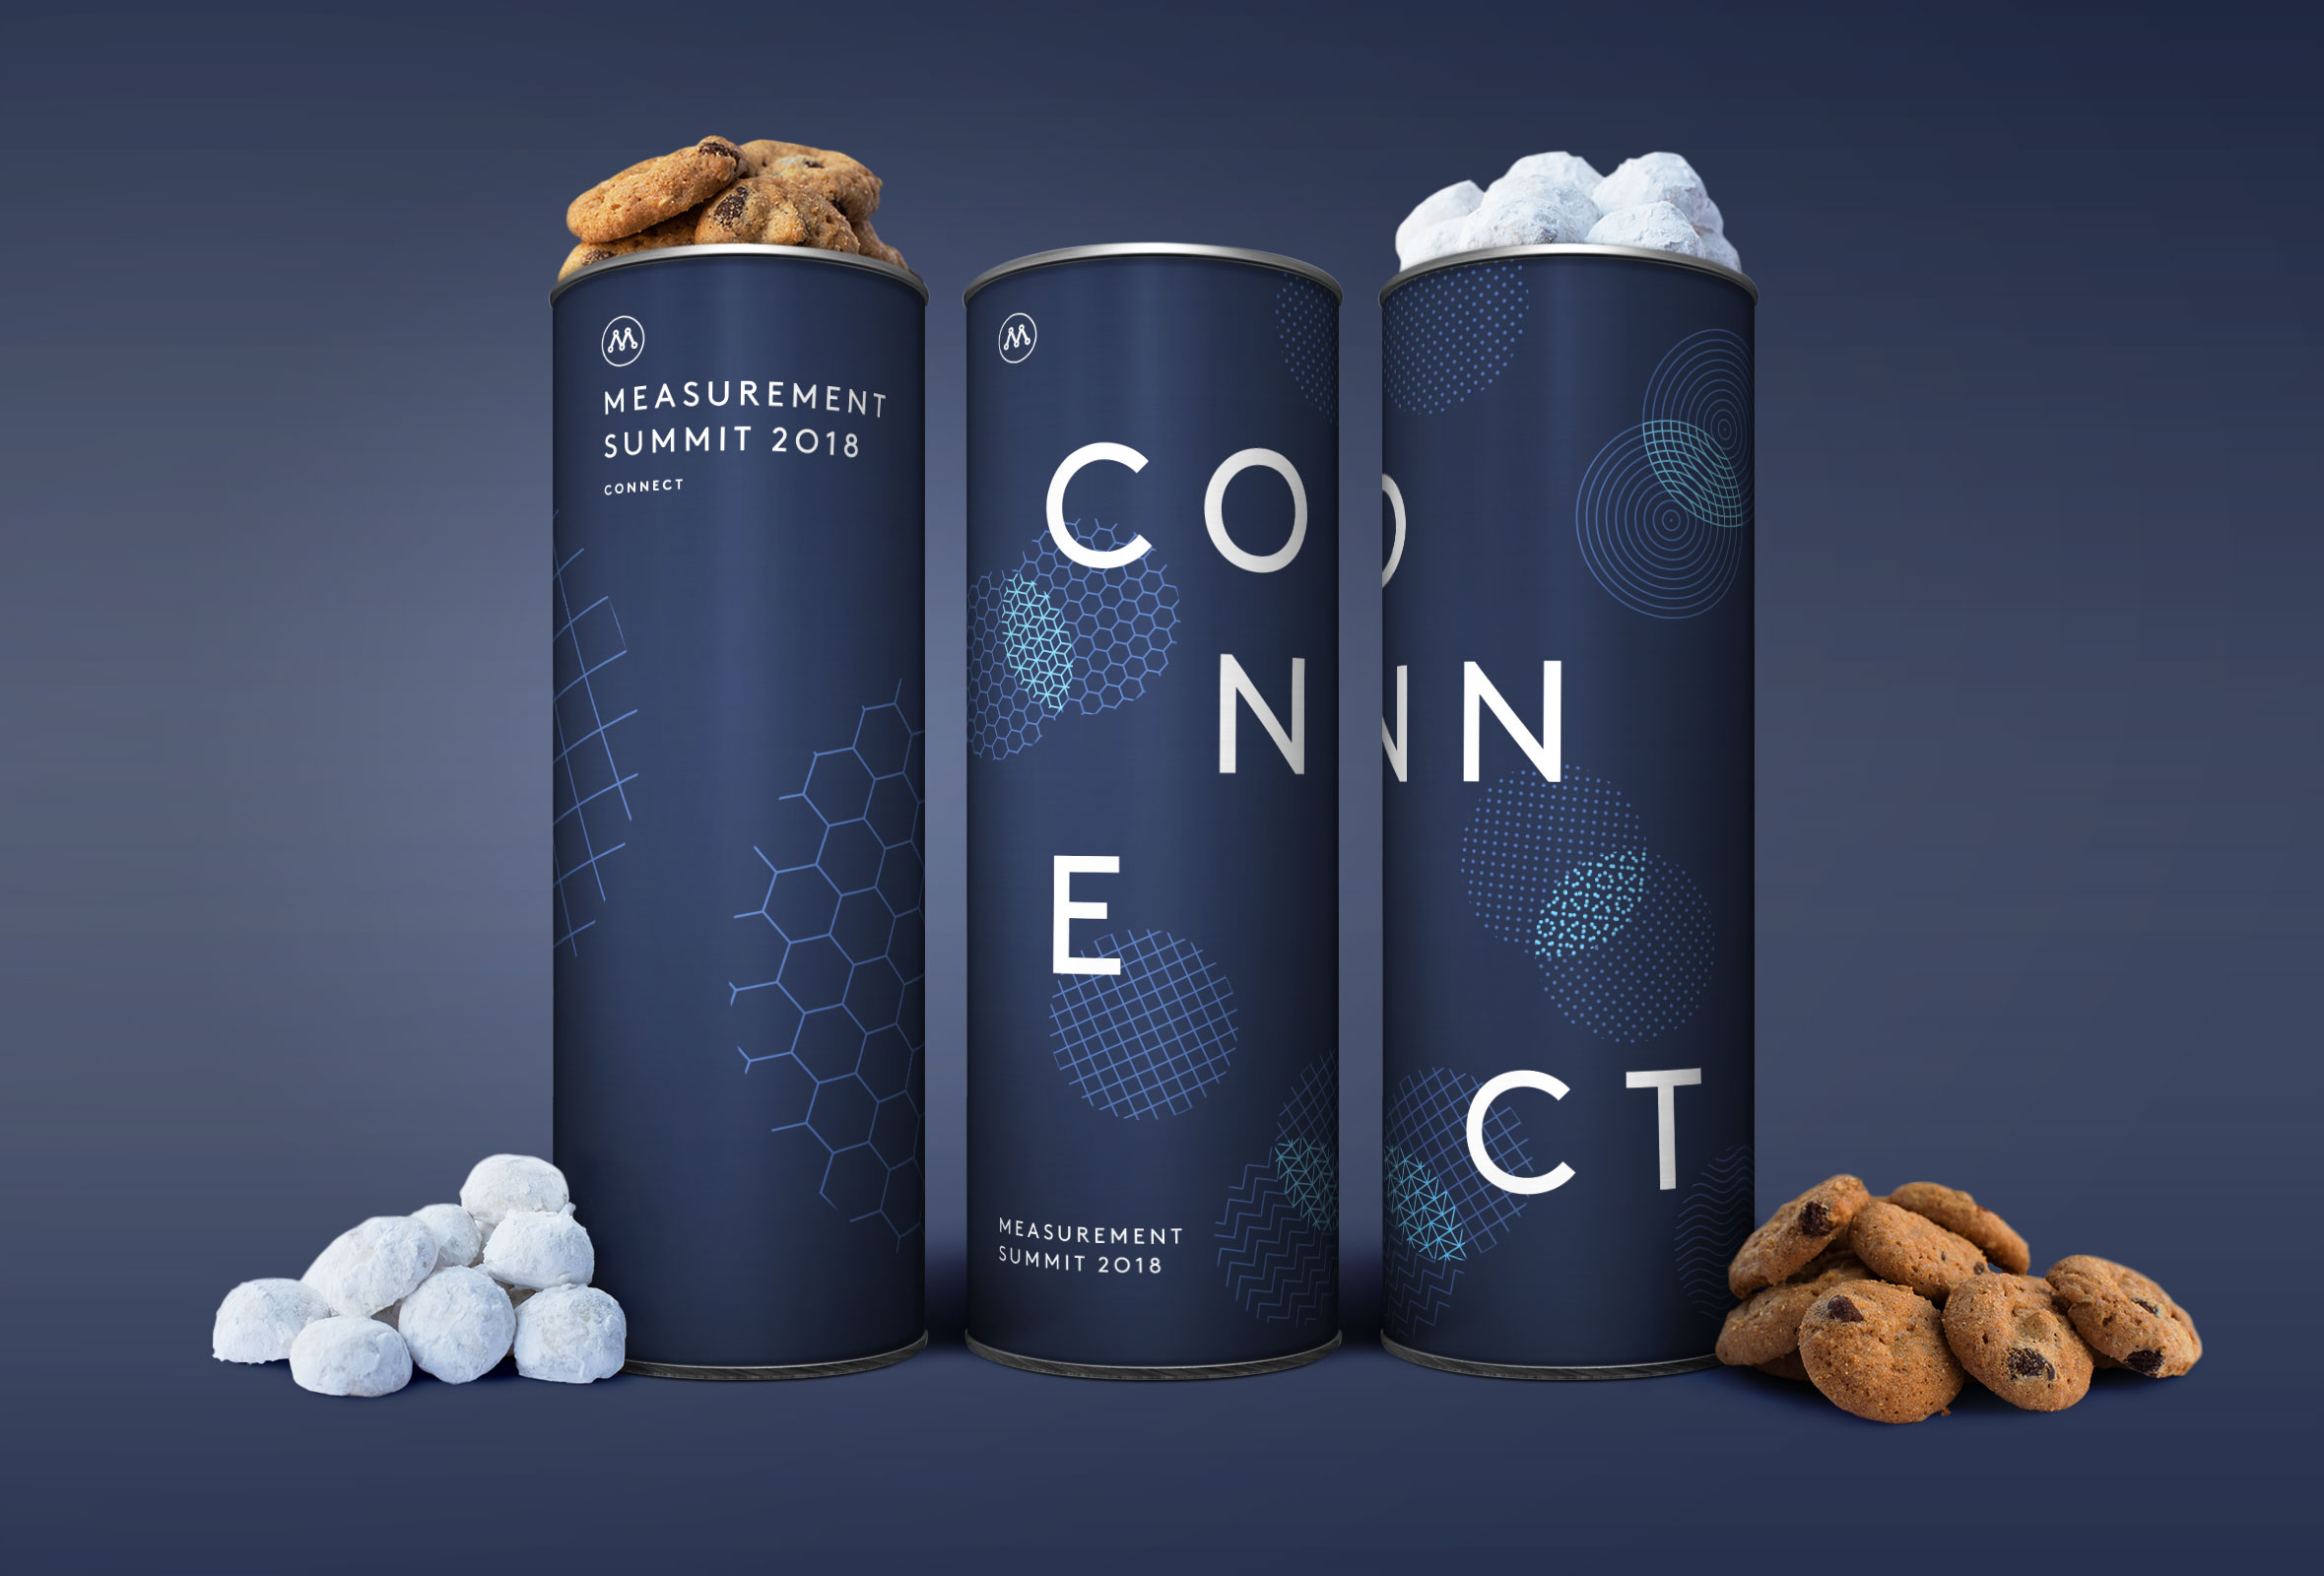 Events are a great time to get your name out and gain brand recognition. With a unique and custom-designed canister event attendees will remember you.